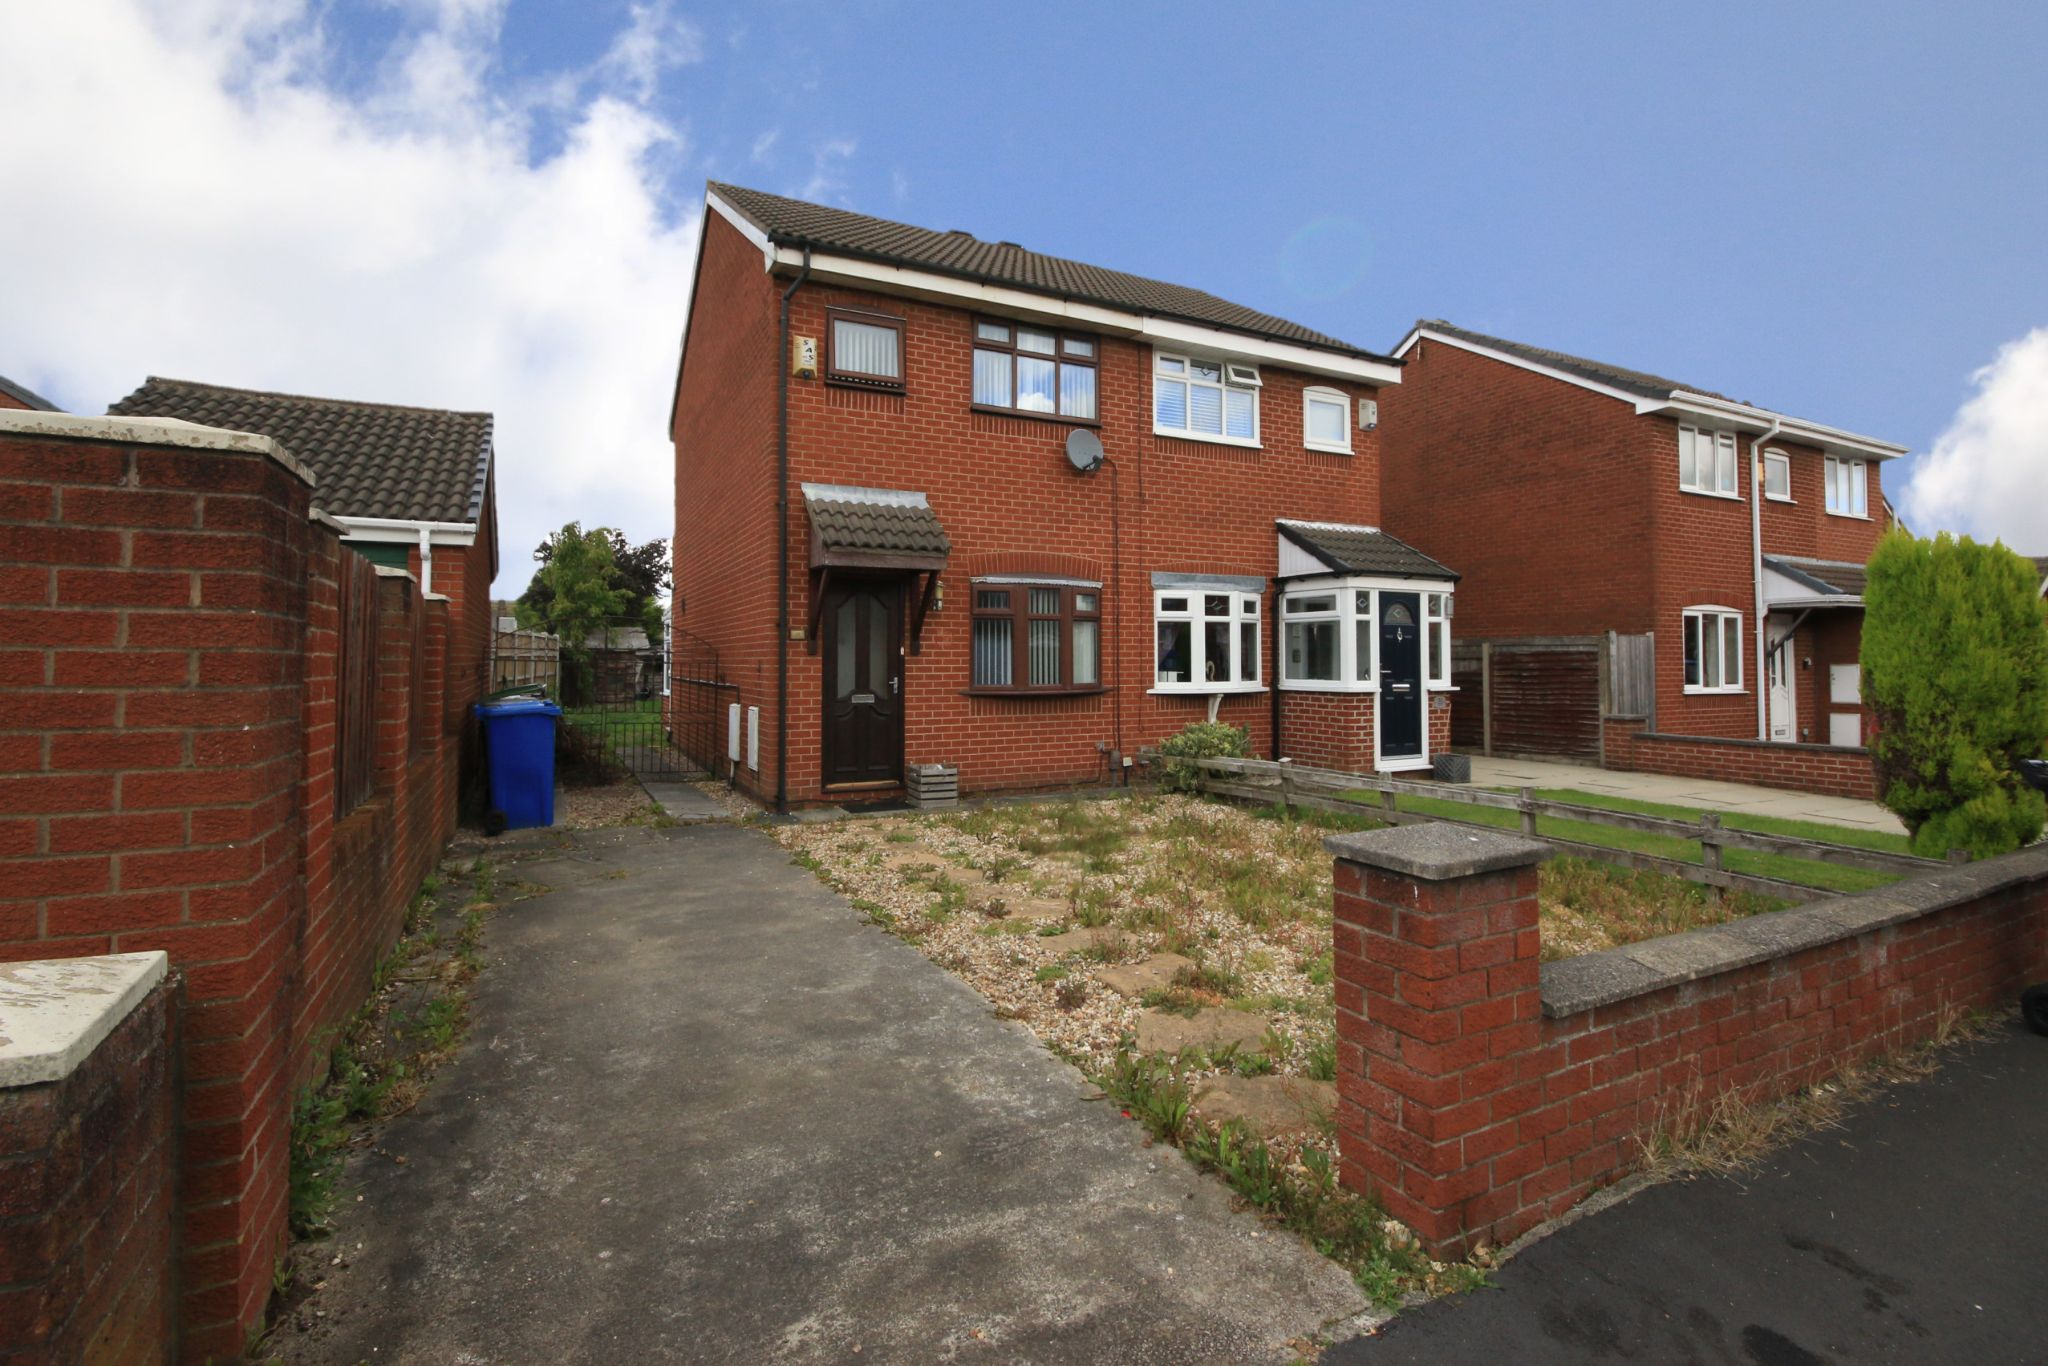 2 bedroom semi-detached house For Sale in Wigan - Photograph 1.